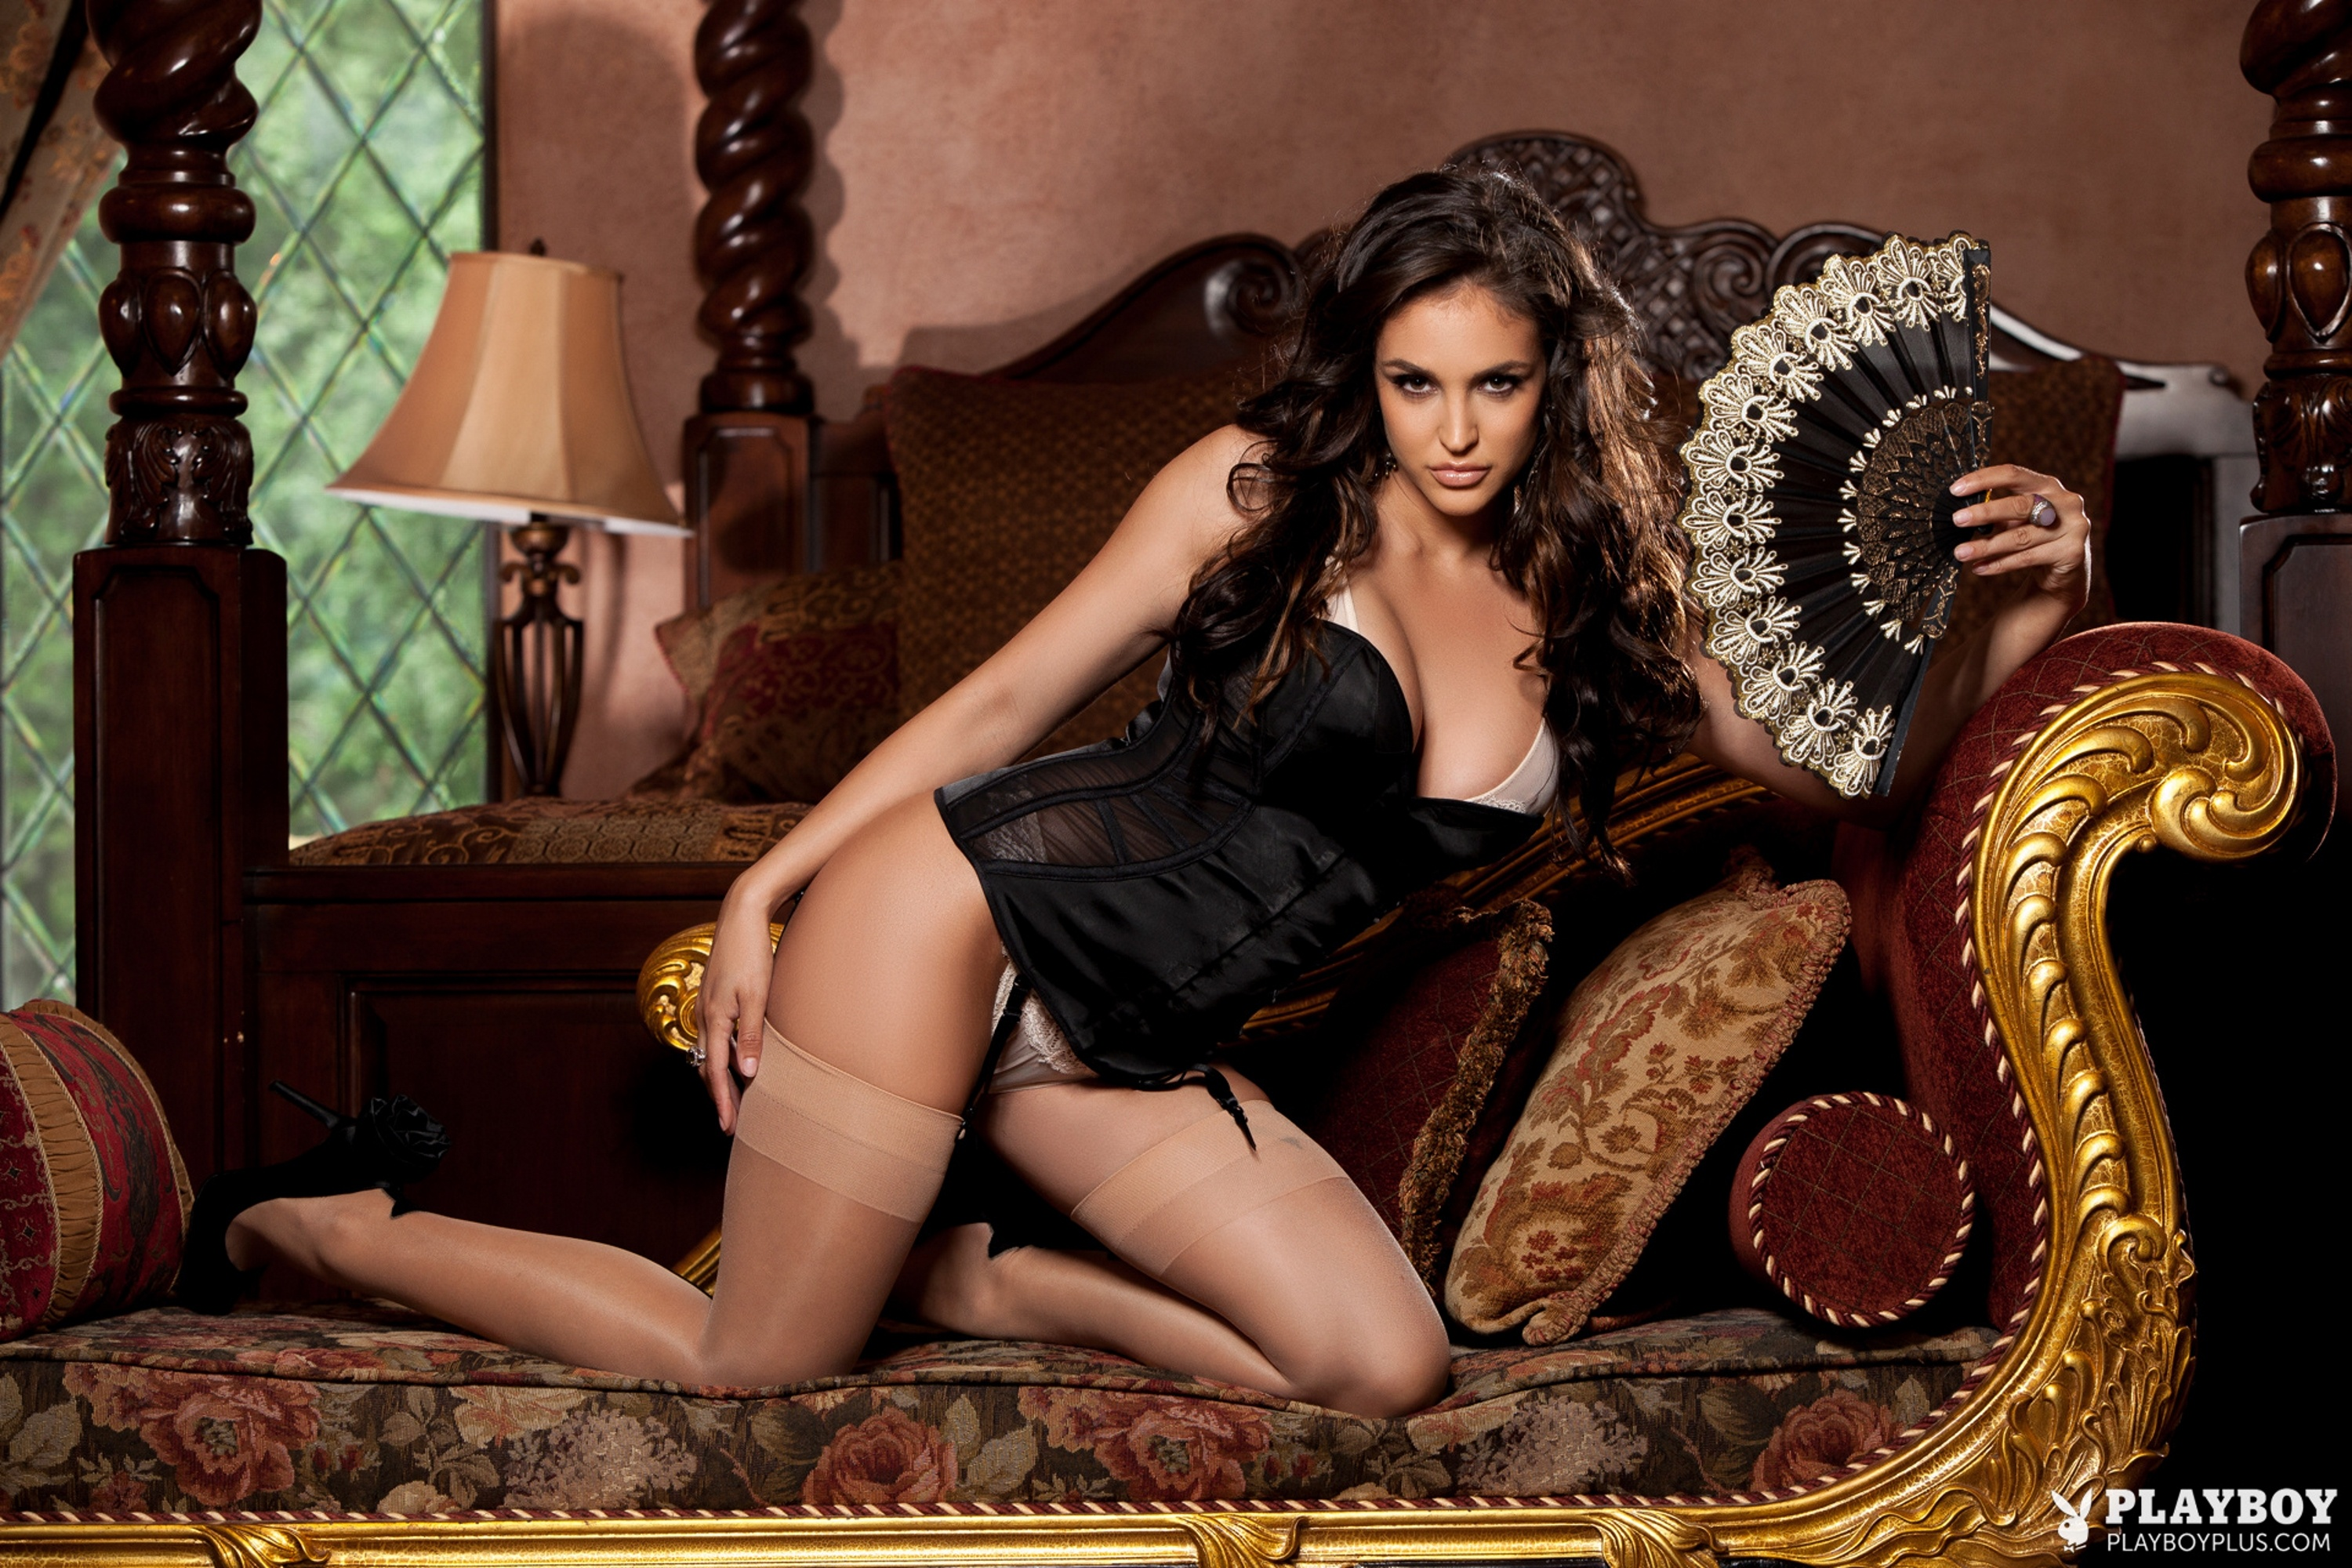 Wallpaper Jaclyn Swedberg, Playboy, Stockings, Lingerie -3953